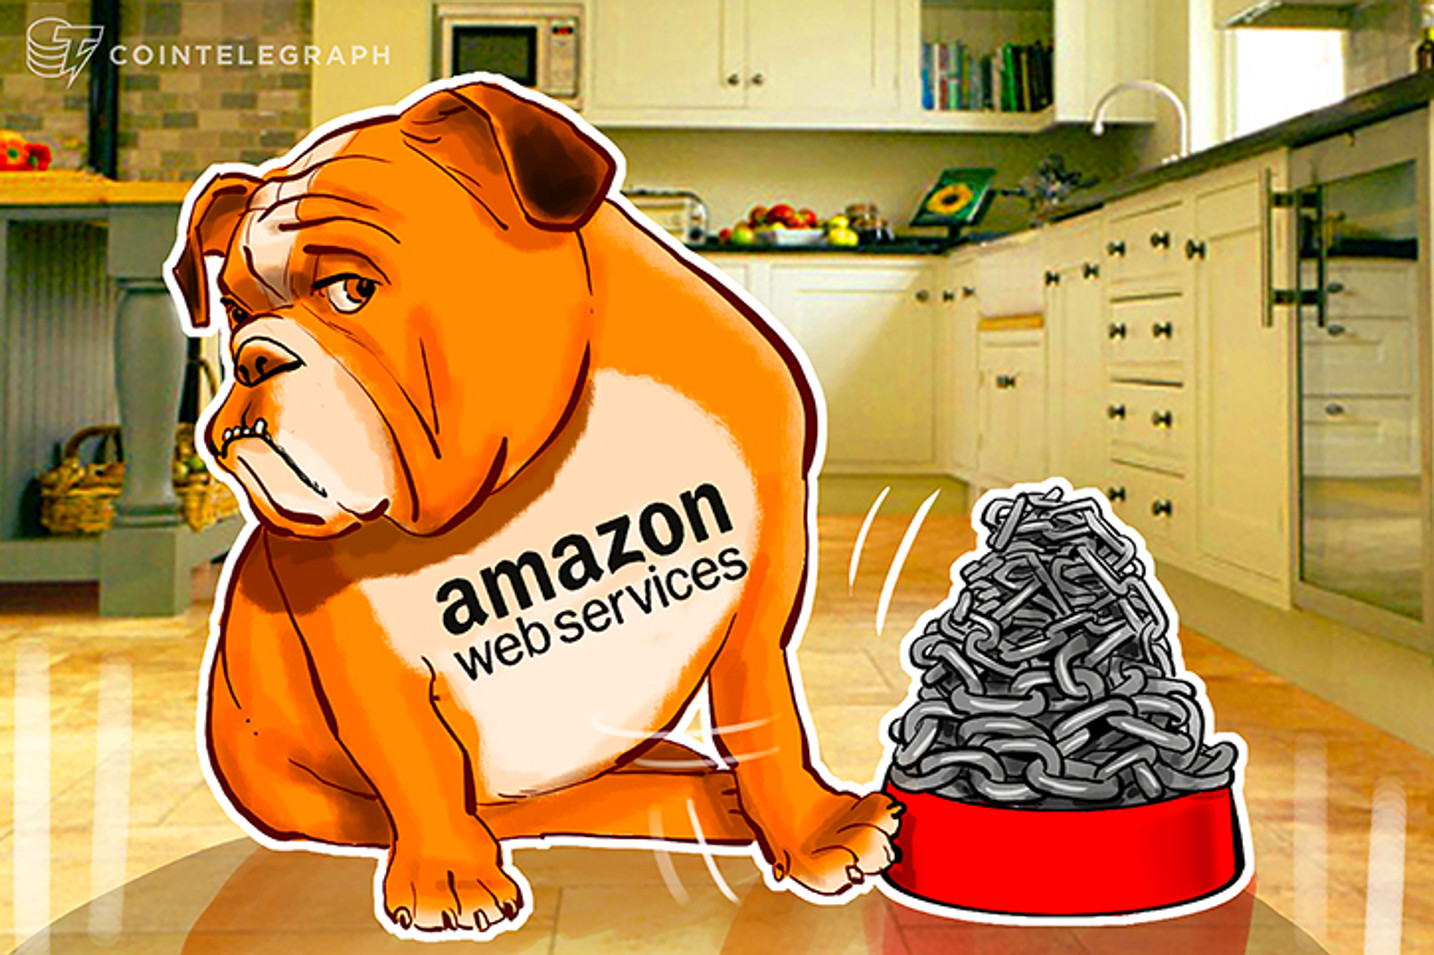 Amazon Web Services Won't Launch Blockchain-based Services, Says CEO Andy Jassy